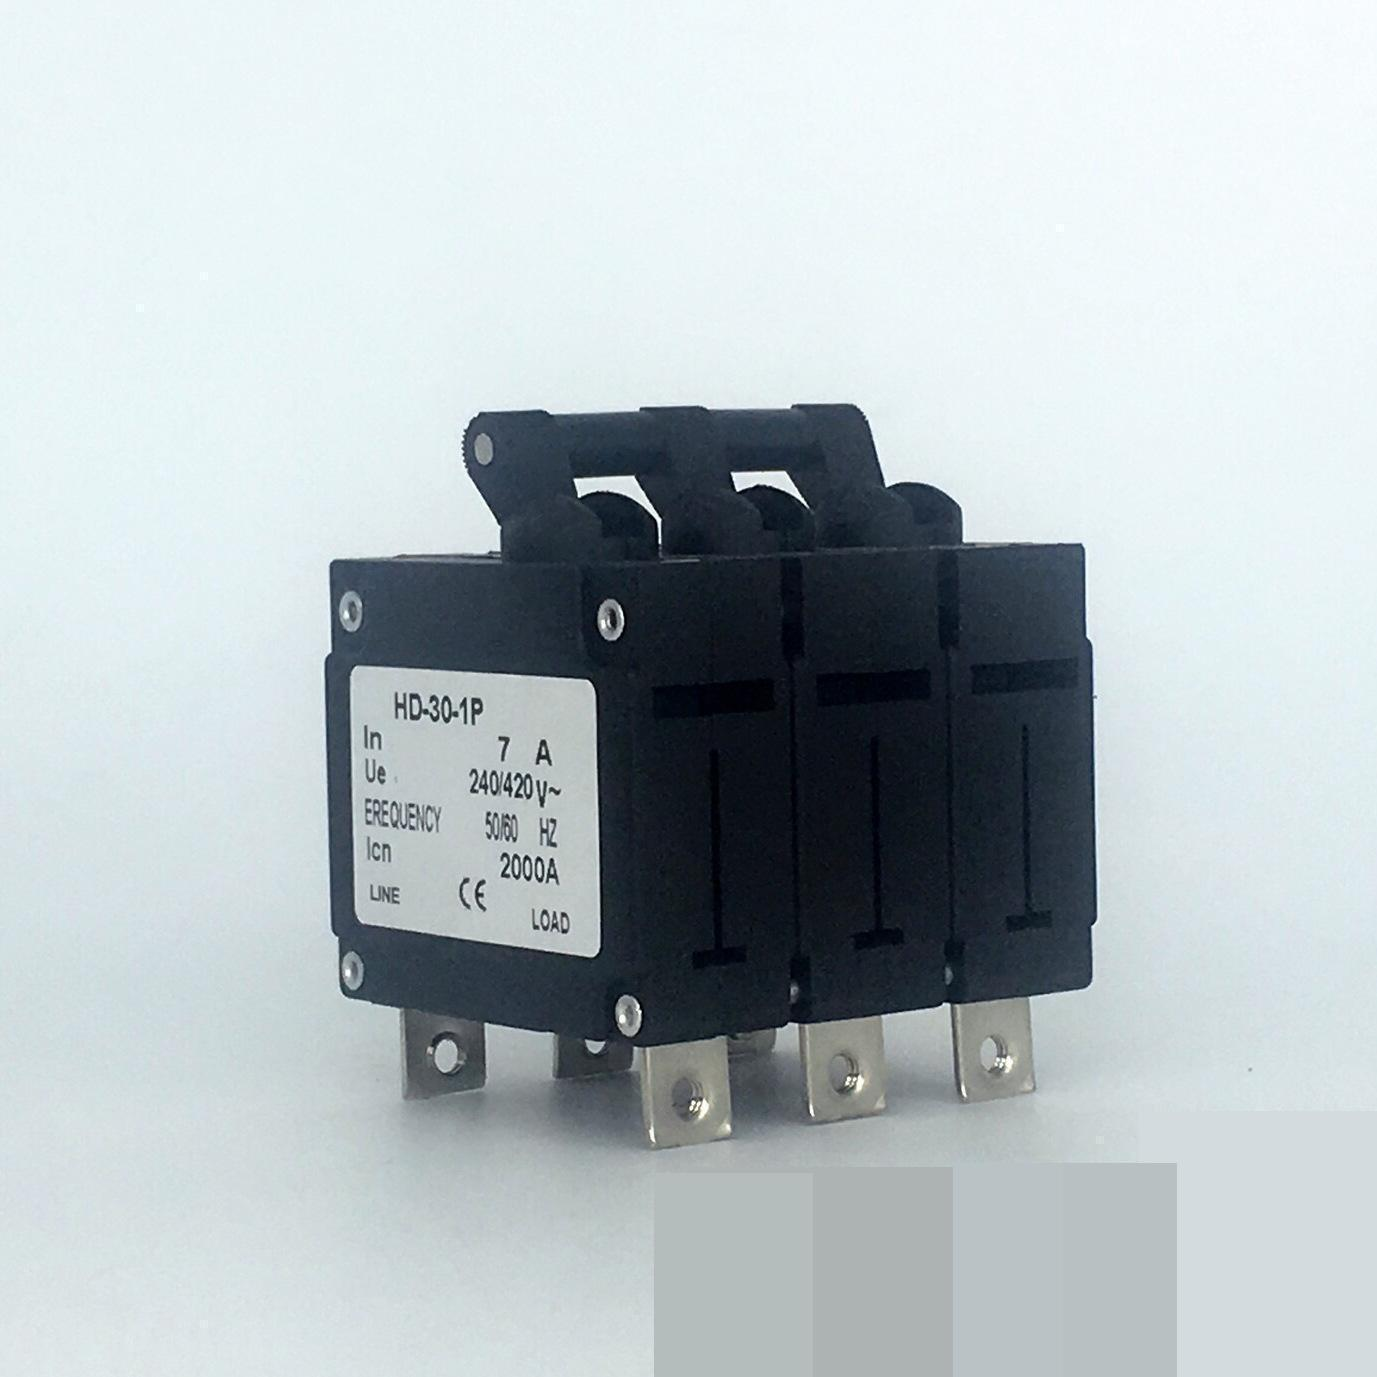 10pcs Hydraulic electromagnetic circuit breaker hd-30 3P/7A device protects the over-magnetic circuit breaker new ezd100e 3p 80a ezd100e3080n plastic breaker